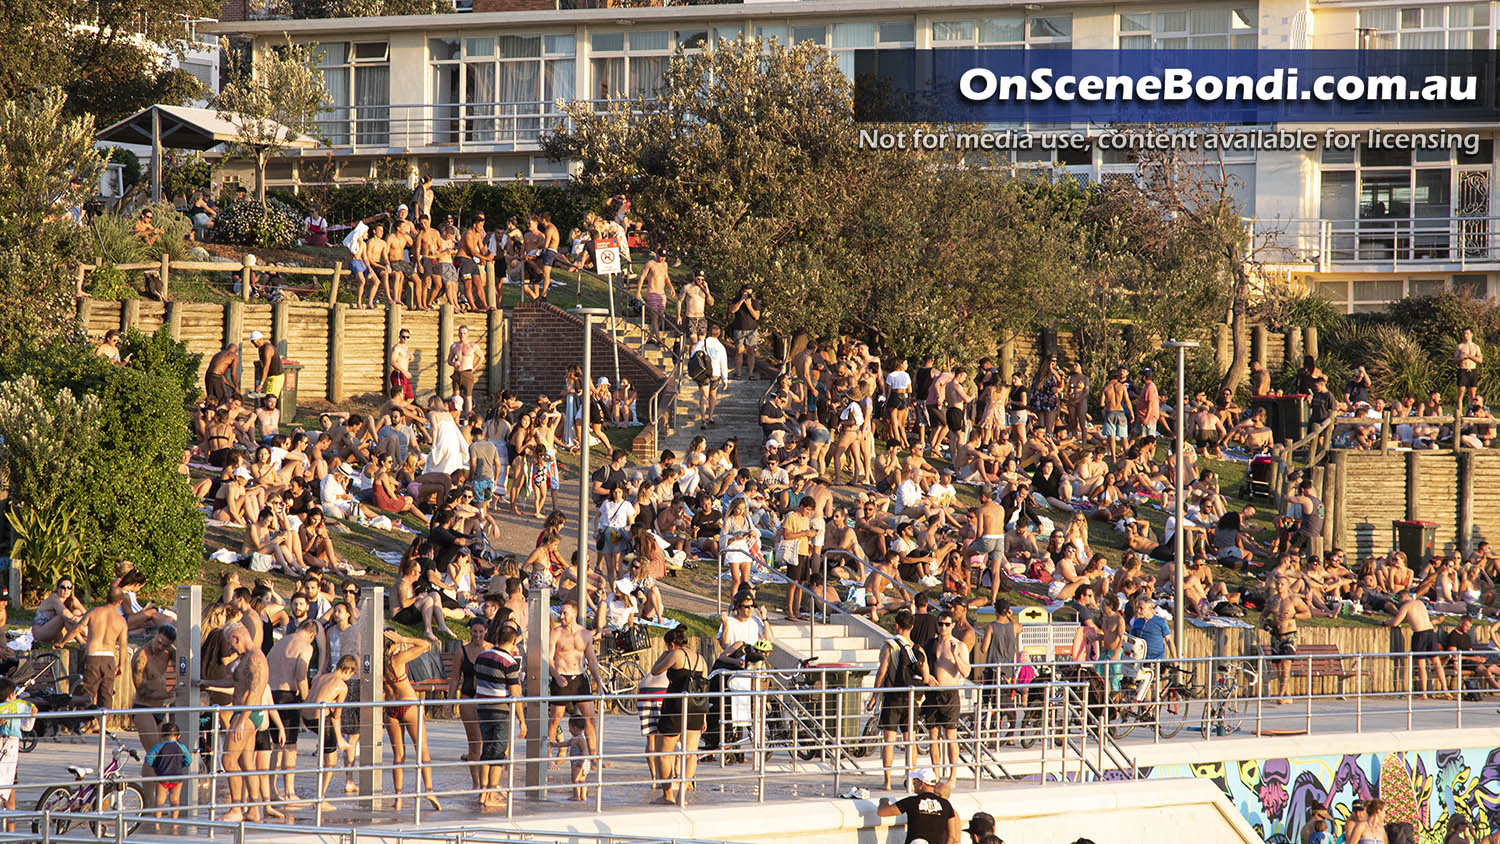 20200320 bondi beach crowd1